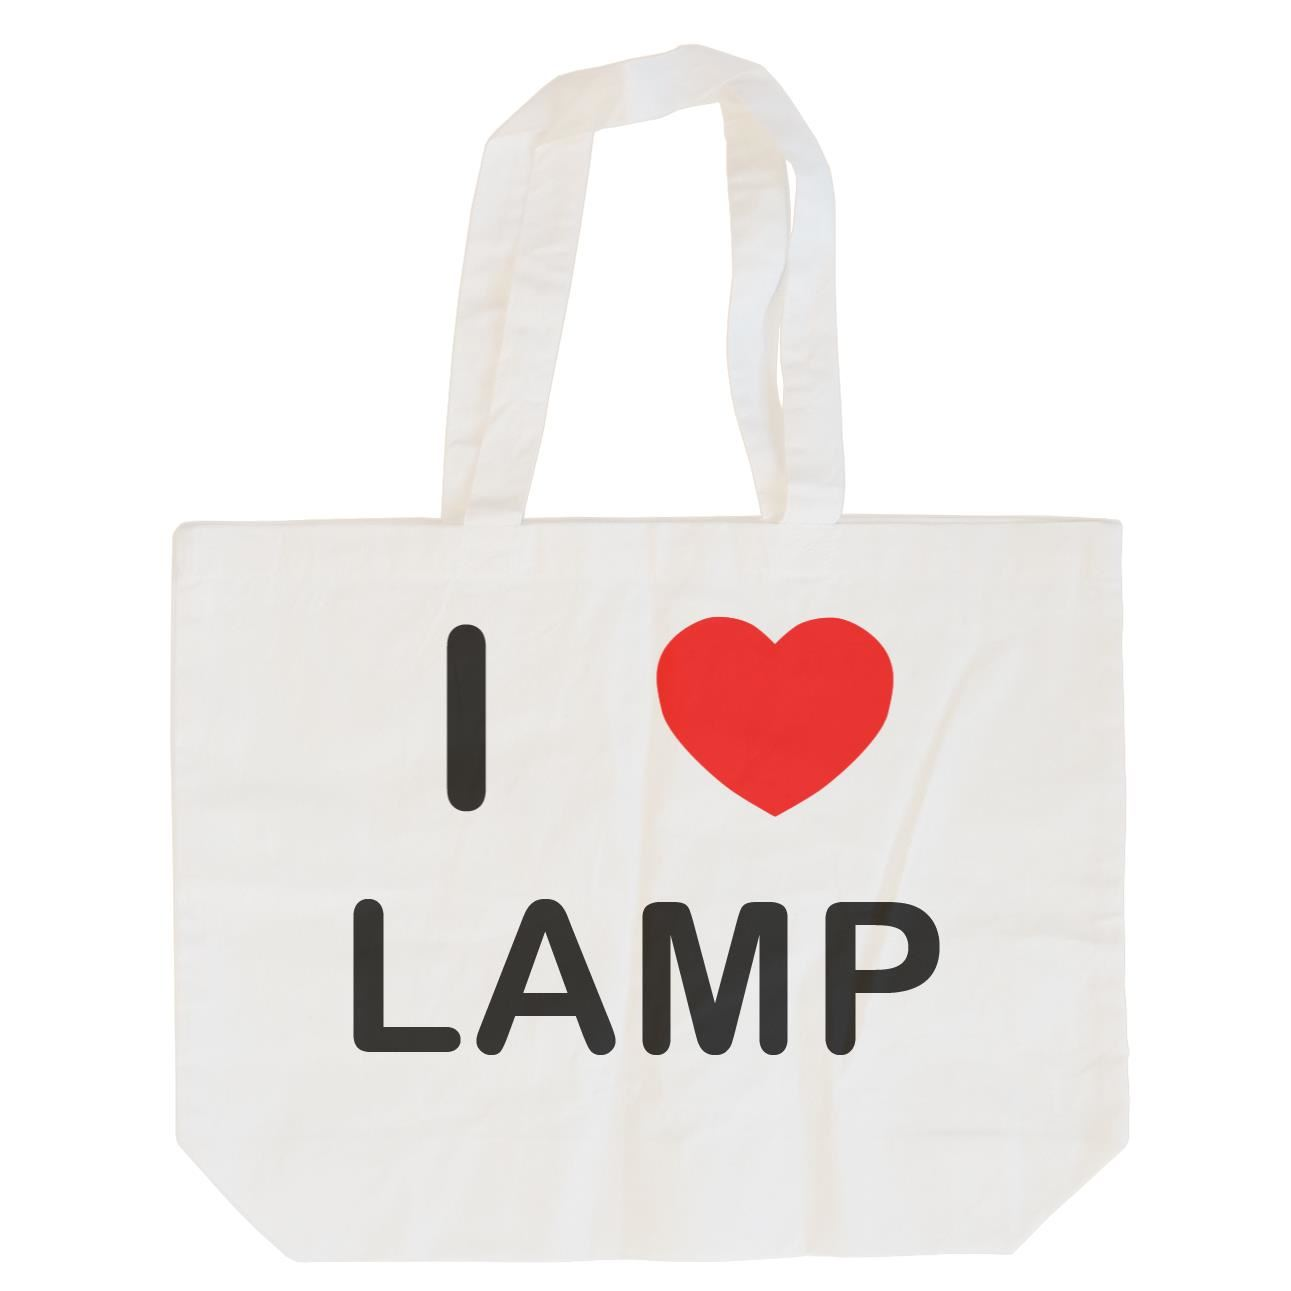 I Love Lamp - Cotton Bag | Size choice Tote, Shopper or Sling